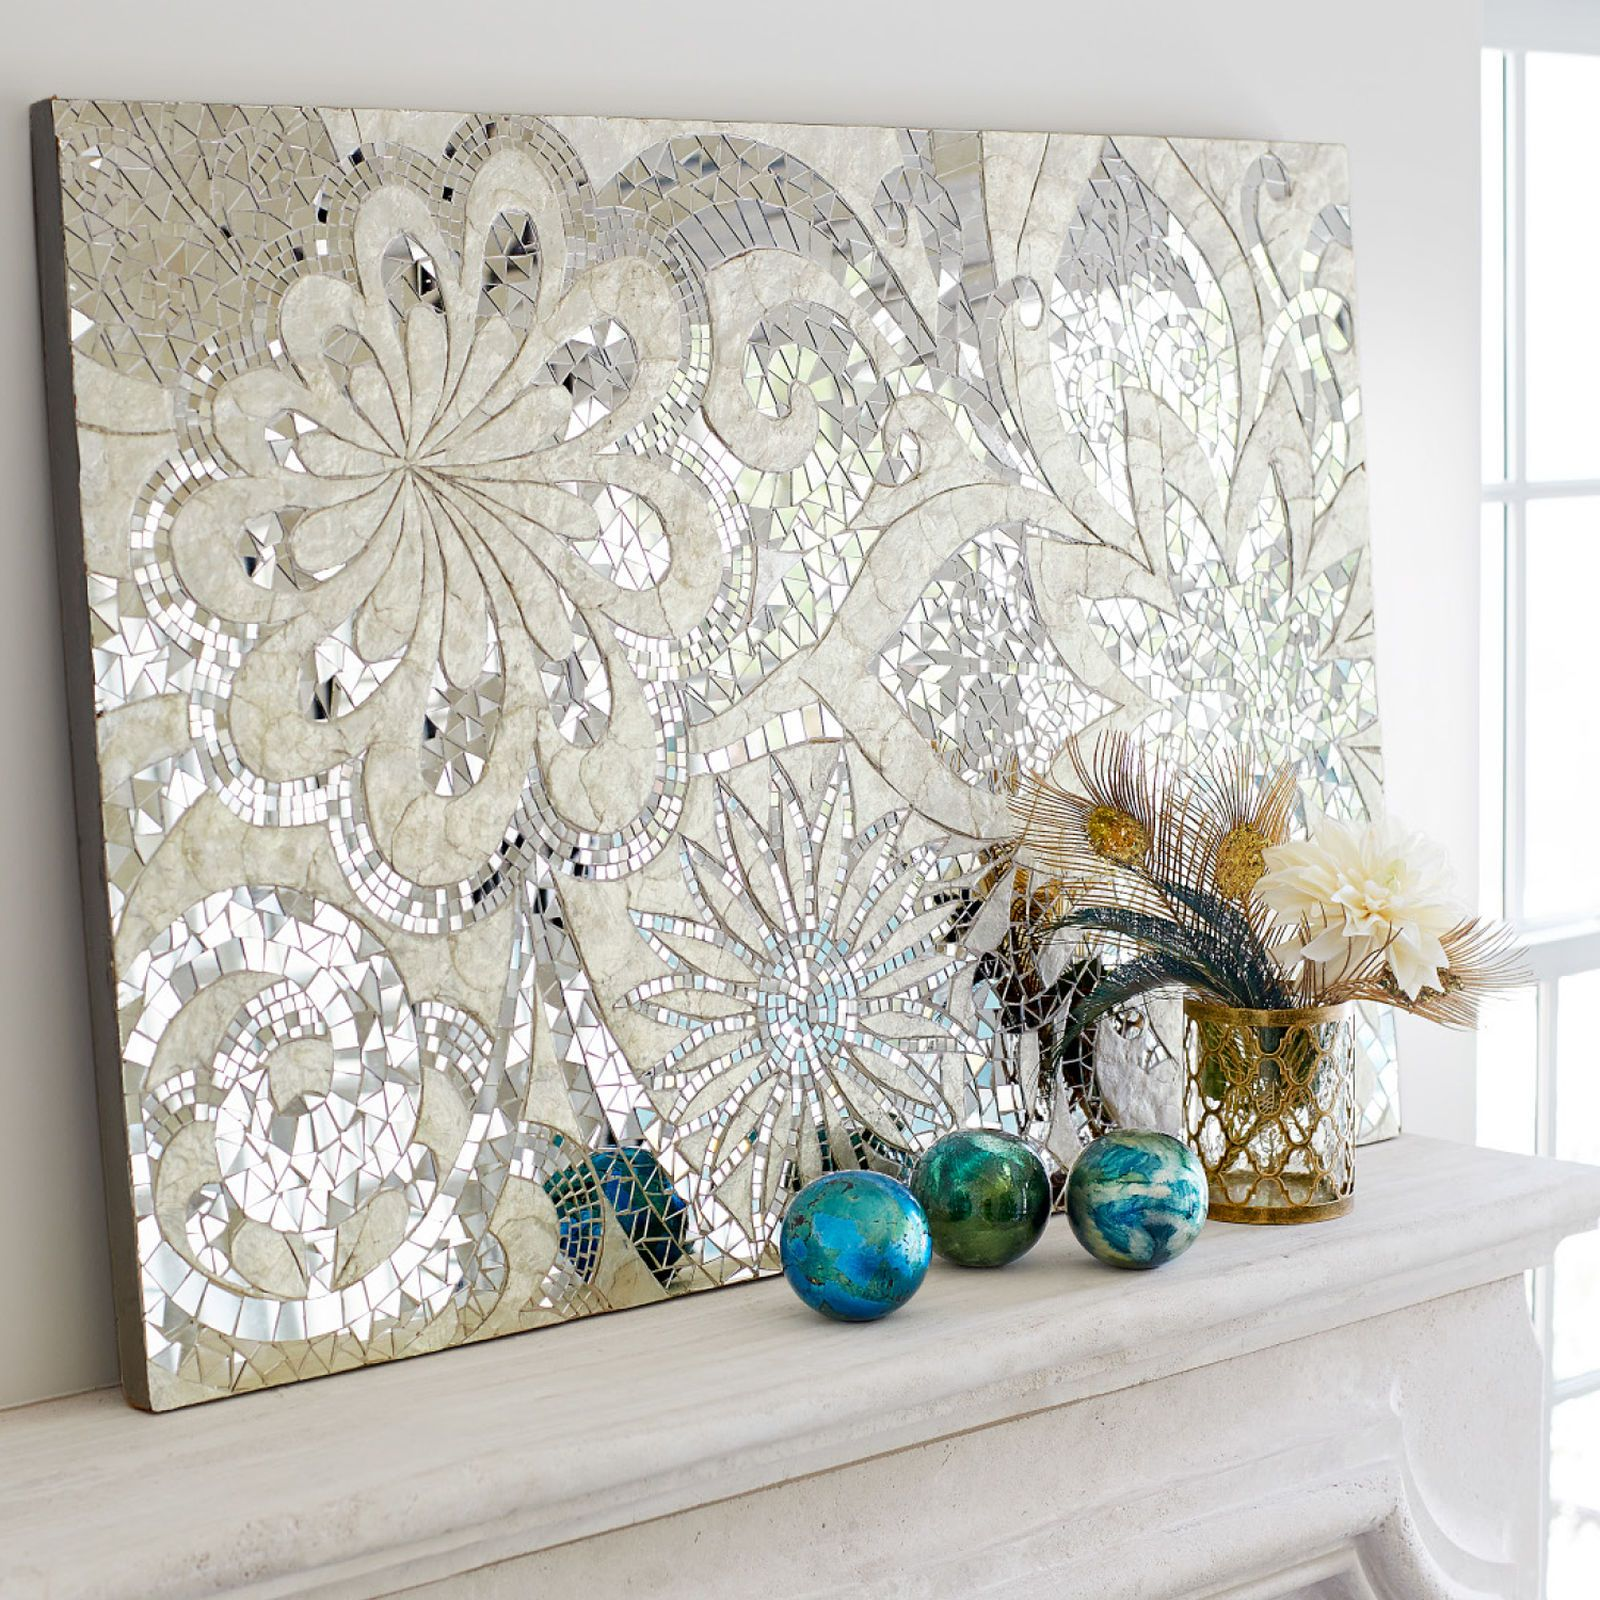 Mosaic Wall Art floral capiz mosaic wall panel | mirror tiles, indonesia and mosaics